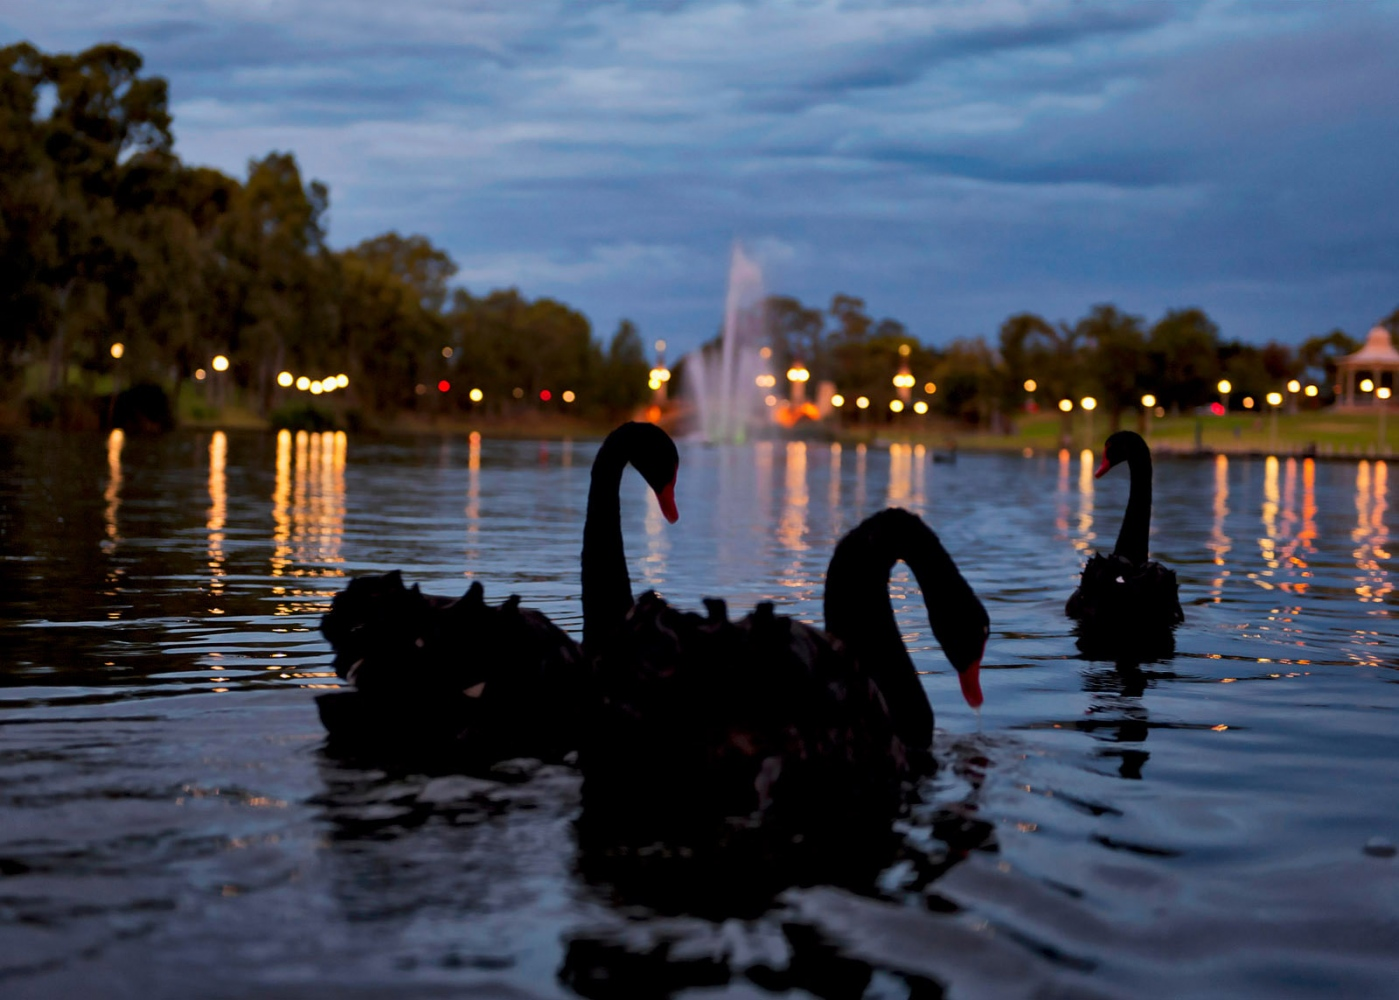 Torrens, Adelaide, S.A.